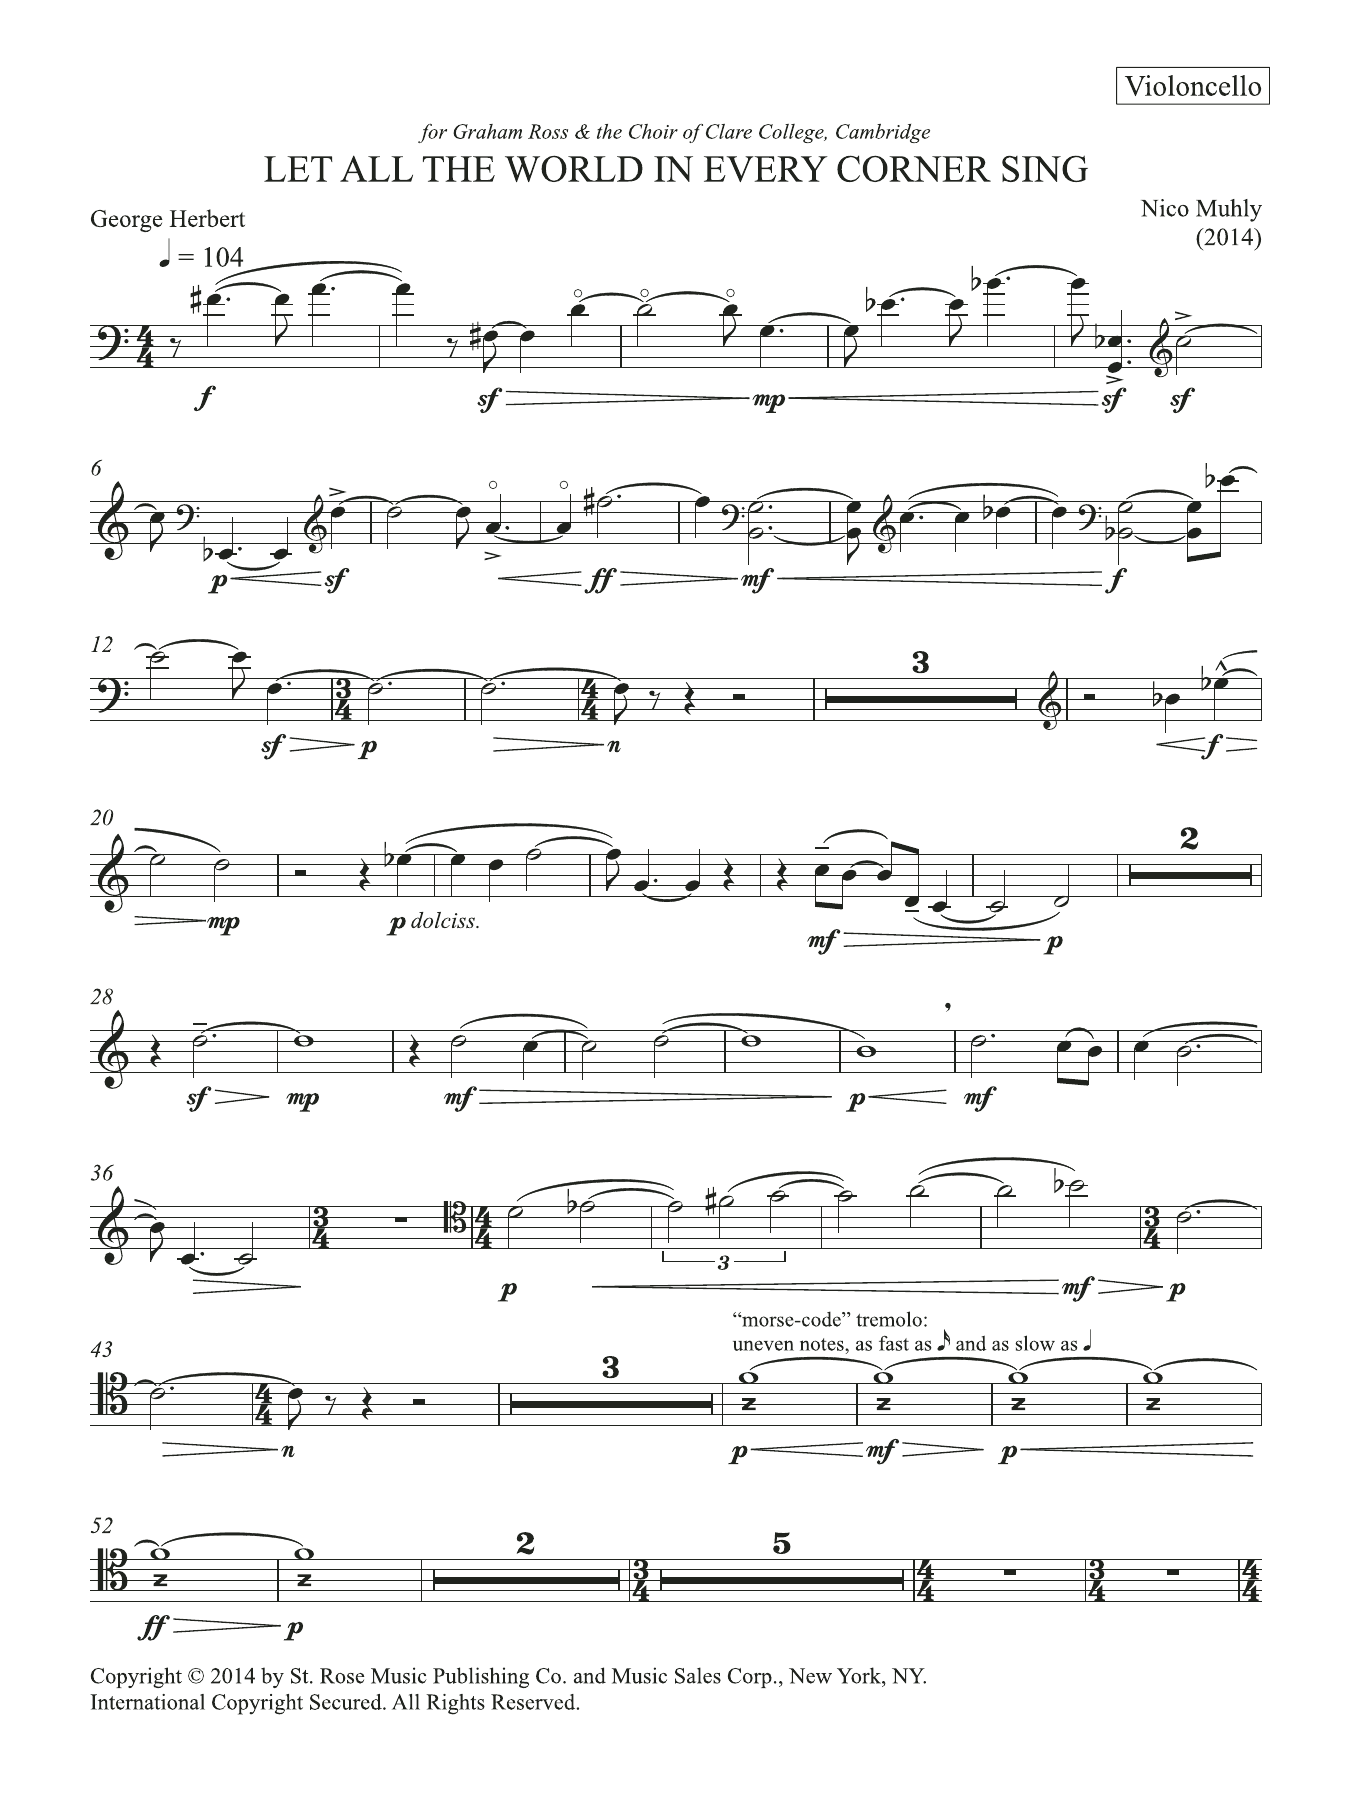 Let All The World In Every Corner Sing Sheet Music